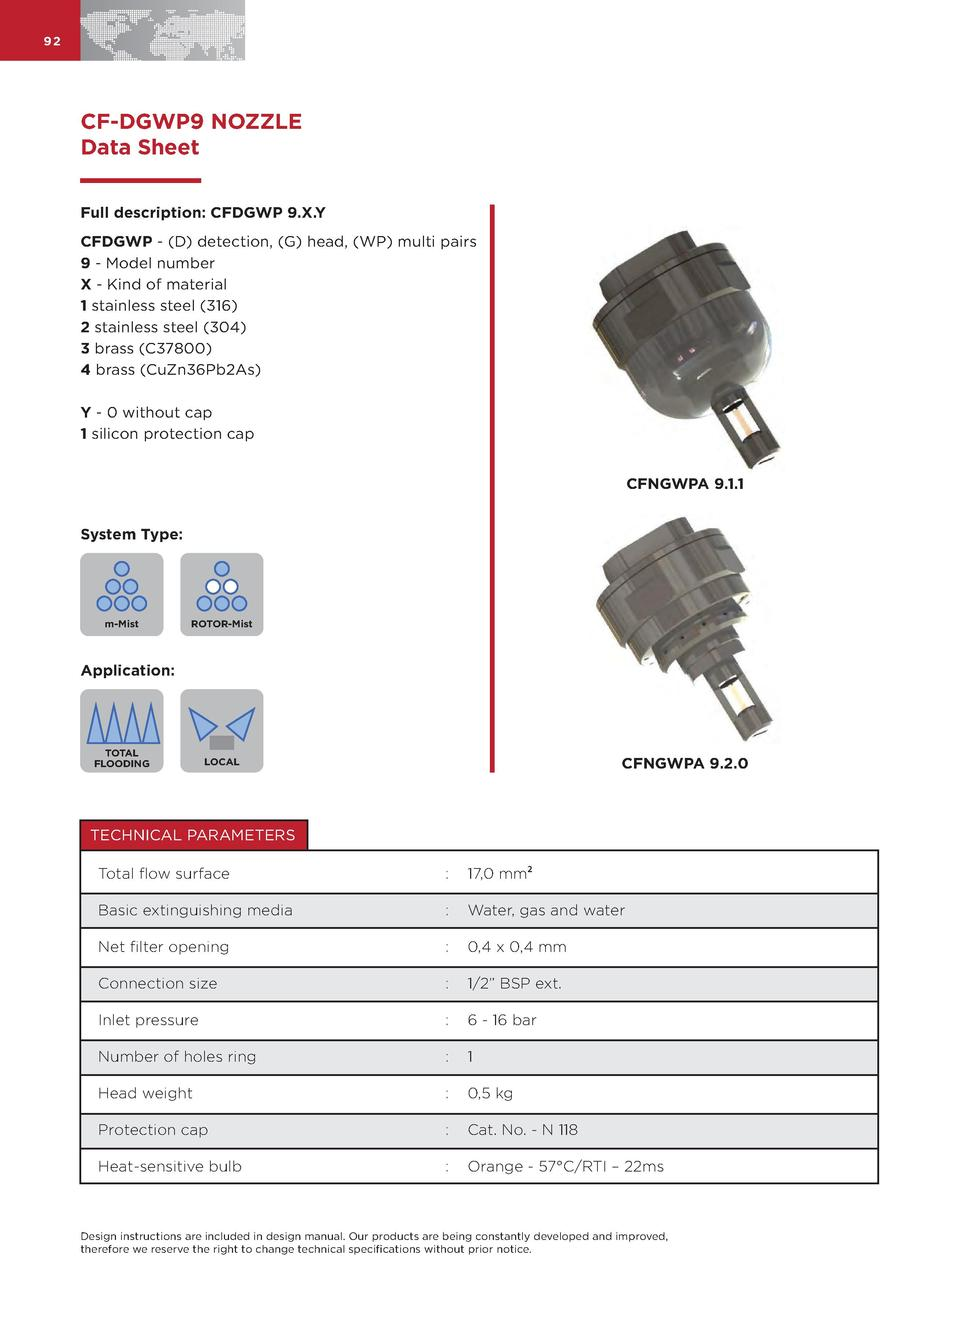 92  CF-DGWP9 NOZZLE Data Sheet Full description  CFDGWP 9.X.Y CFDGWP -  D  detection,  G  head,  WP  multi pairs 9 - Model...